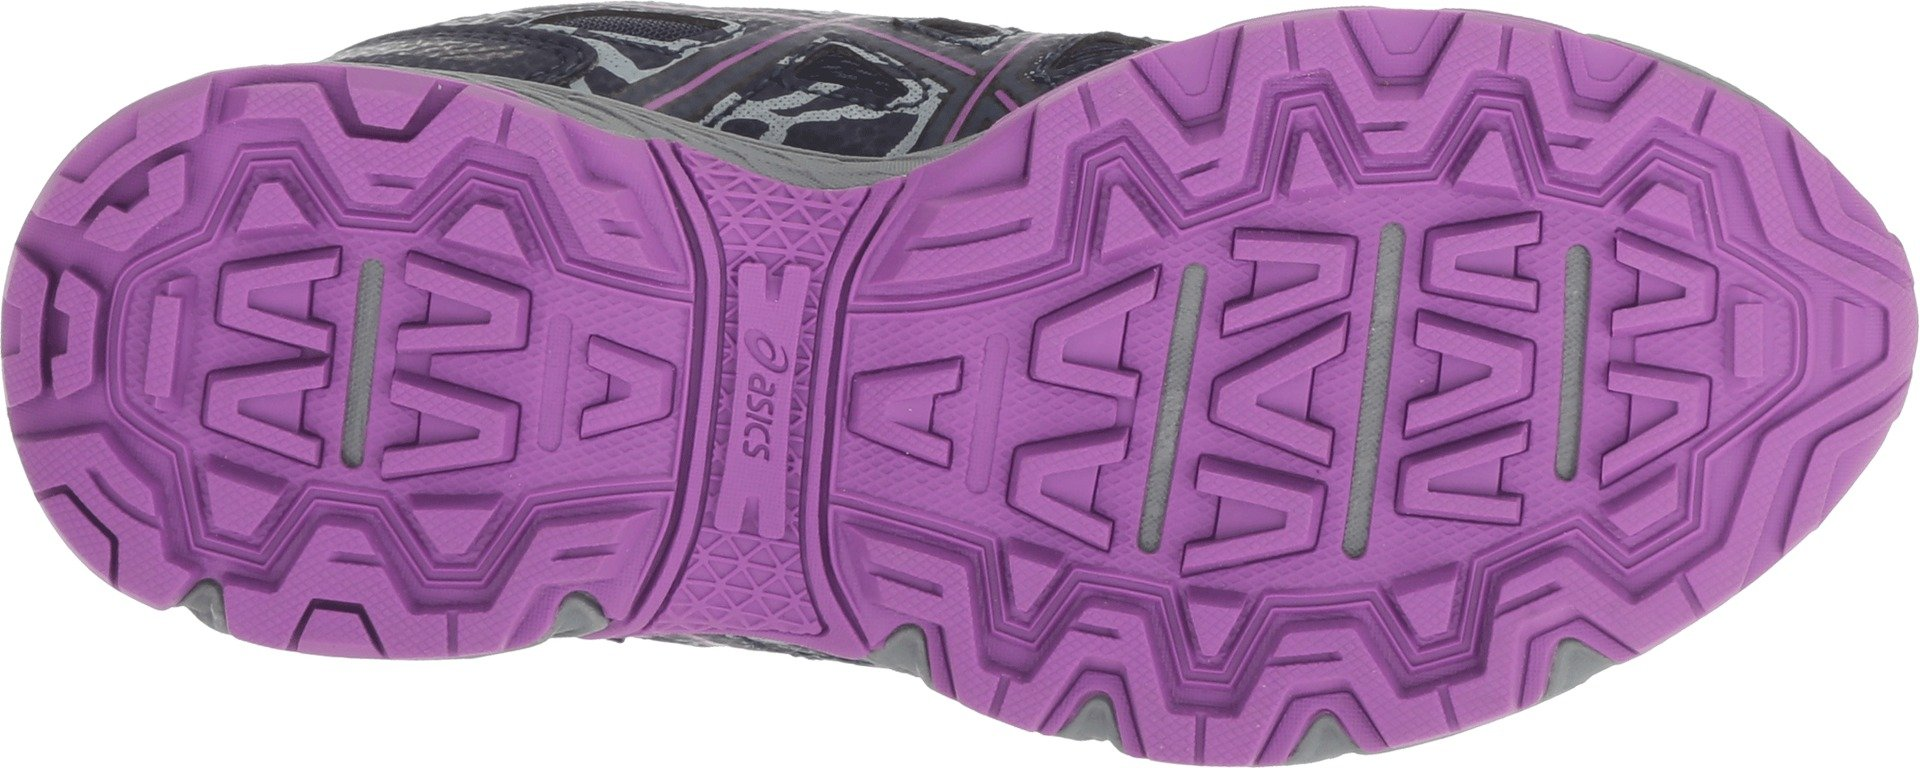 ASICS Kids Gel-Venture 6, Peacoat/Orchid, 4 M US Big Kid by ASICS (Image #3)